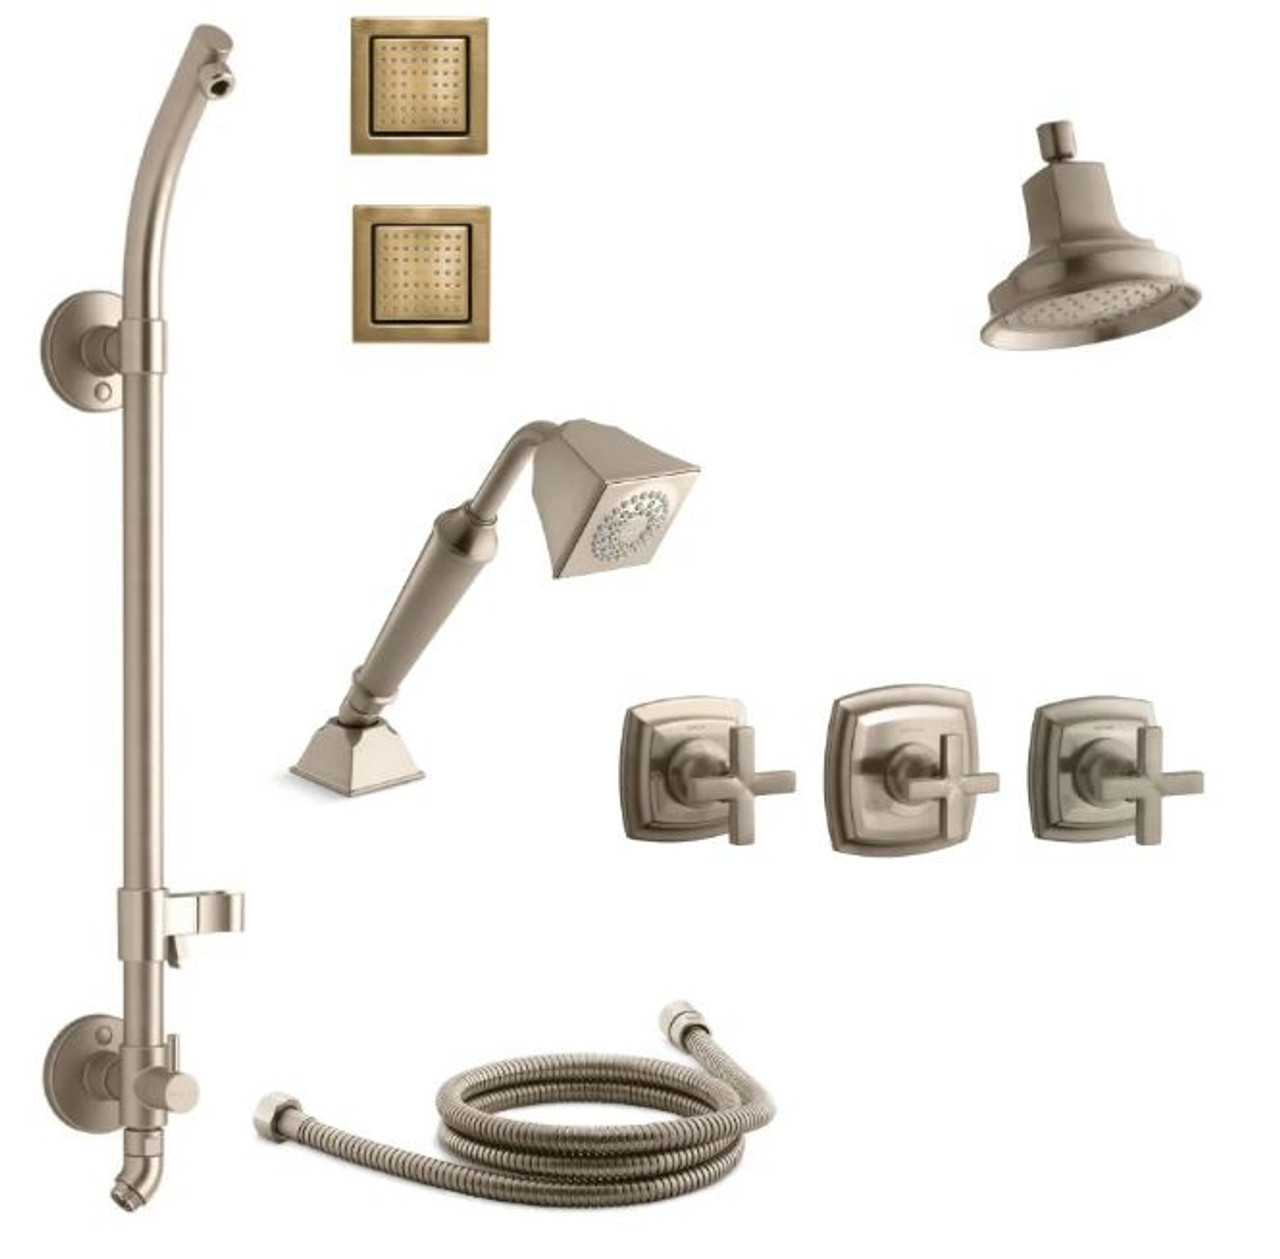 kohler margaux thermostatic hydrorail shower system with single function shower head hand shower body sprays cross handle valve trims